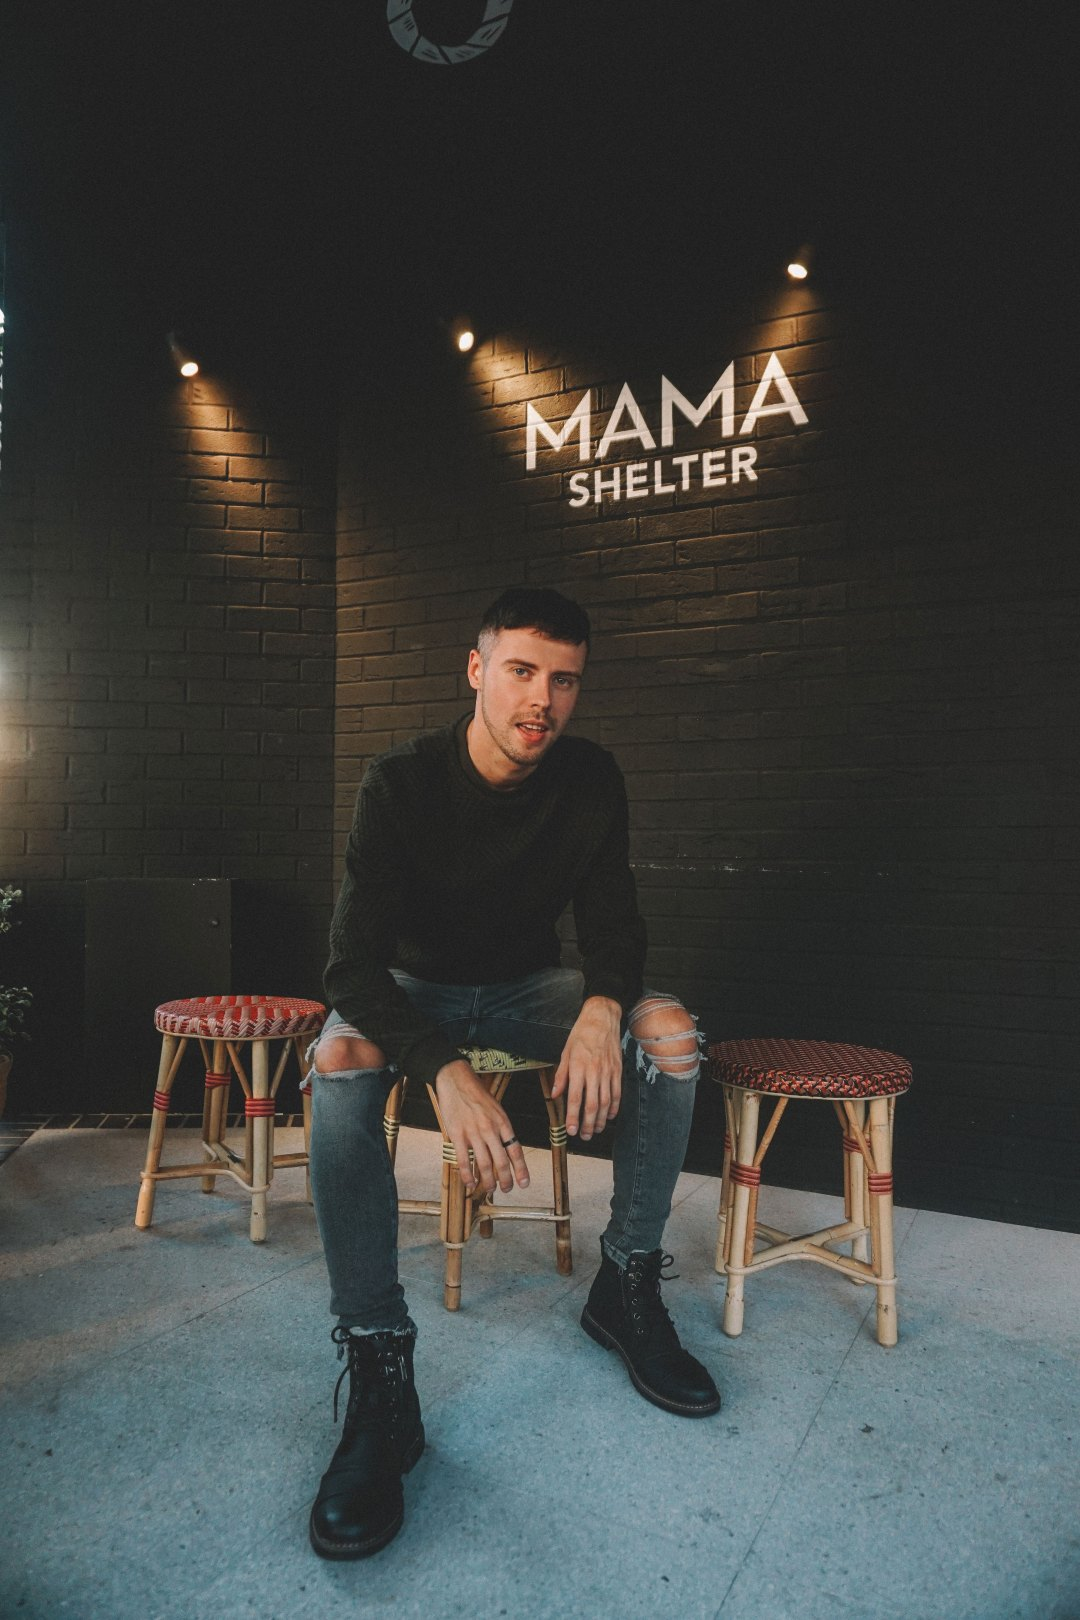 Outside Mama Shelter London. Blog by Skirmantas Petraitis.